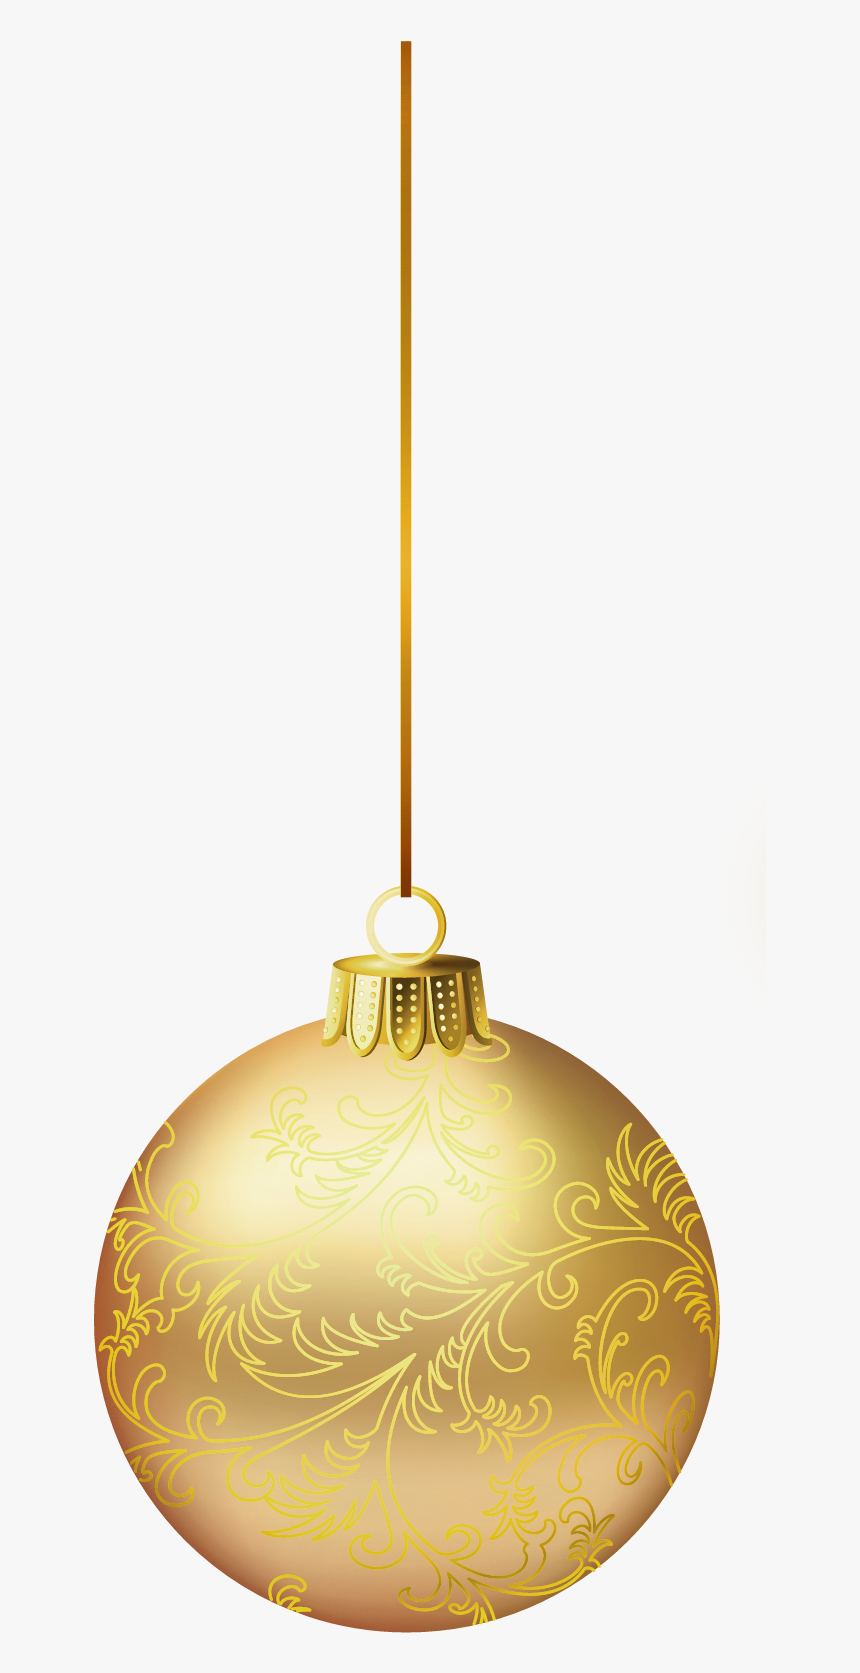 Gold Christmas Png Picture - Gold Christmas Ball Png, Transparent Png, Free Download